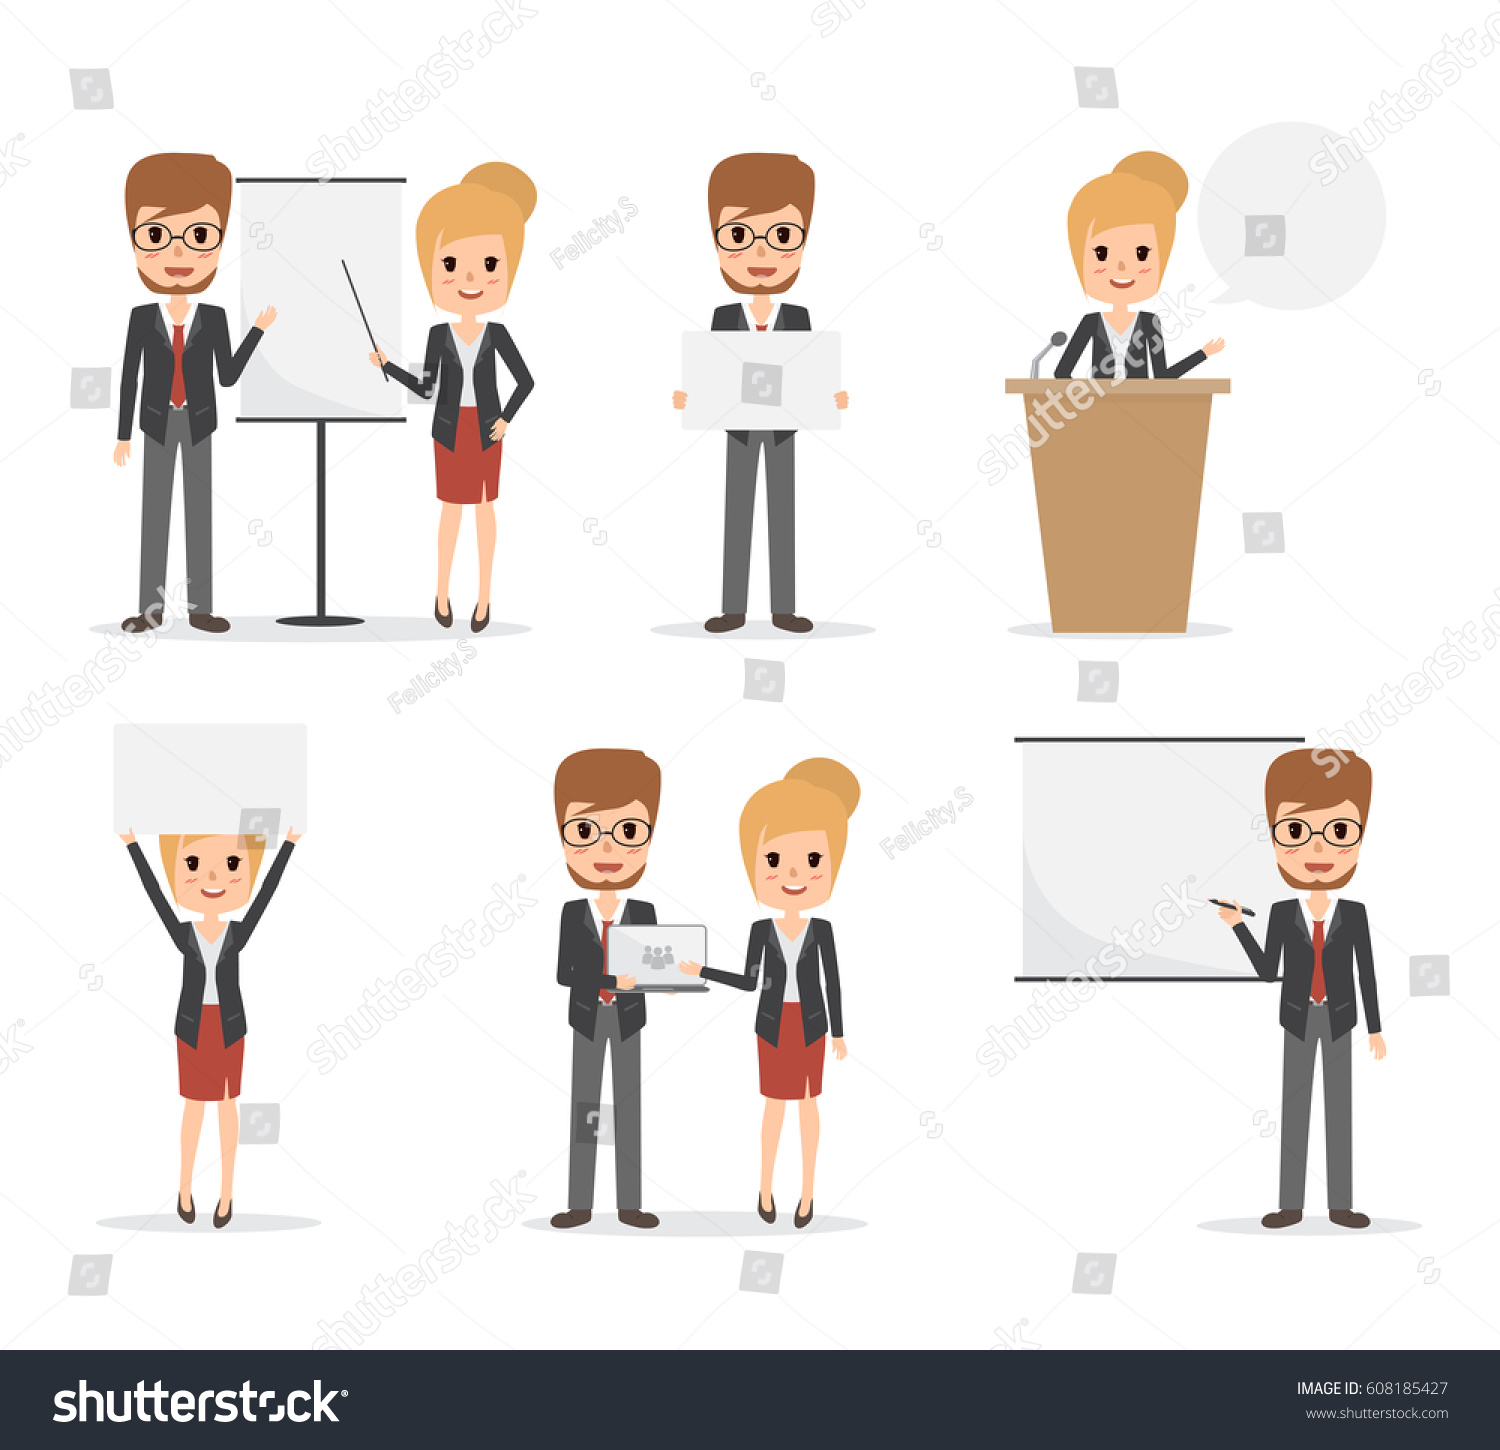 Character Design Career Information : Businessman business woman job character office stock